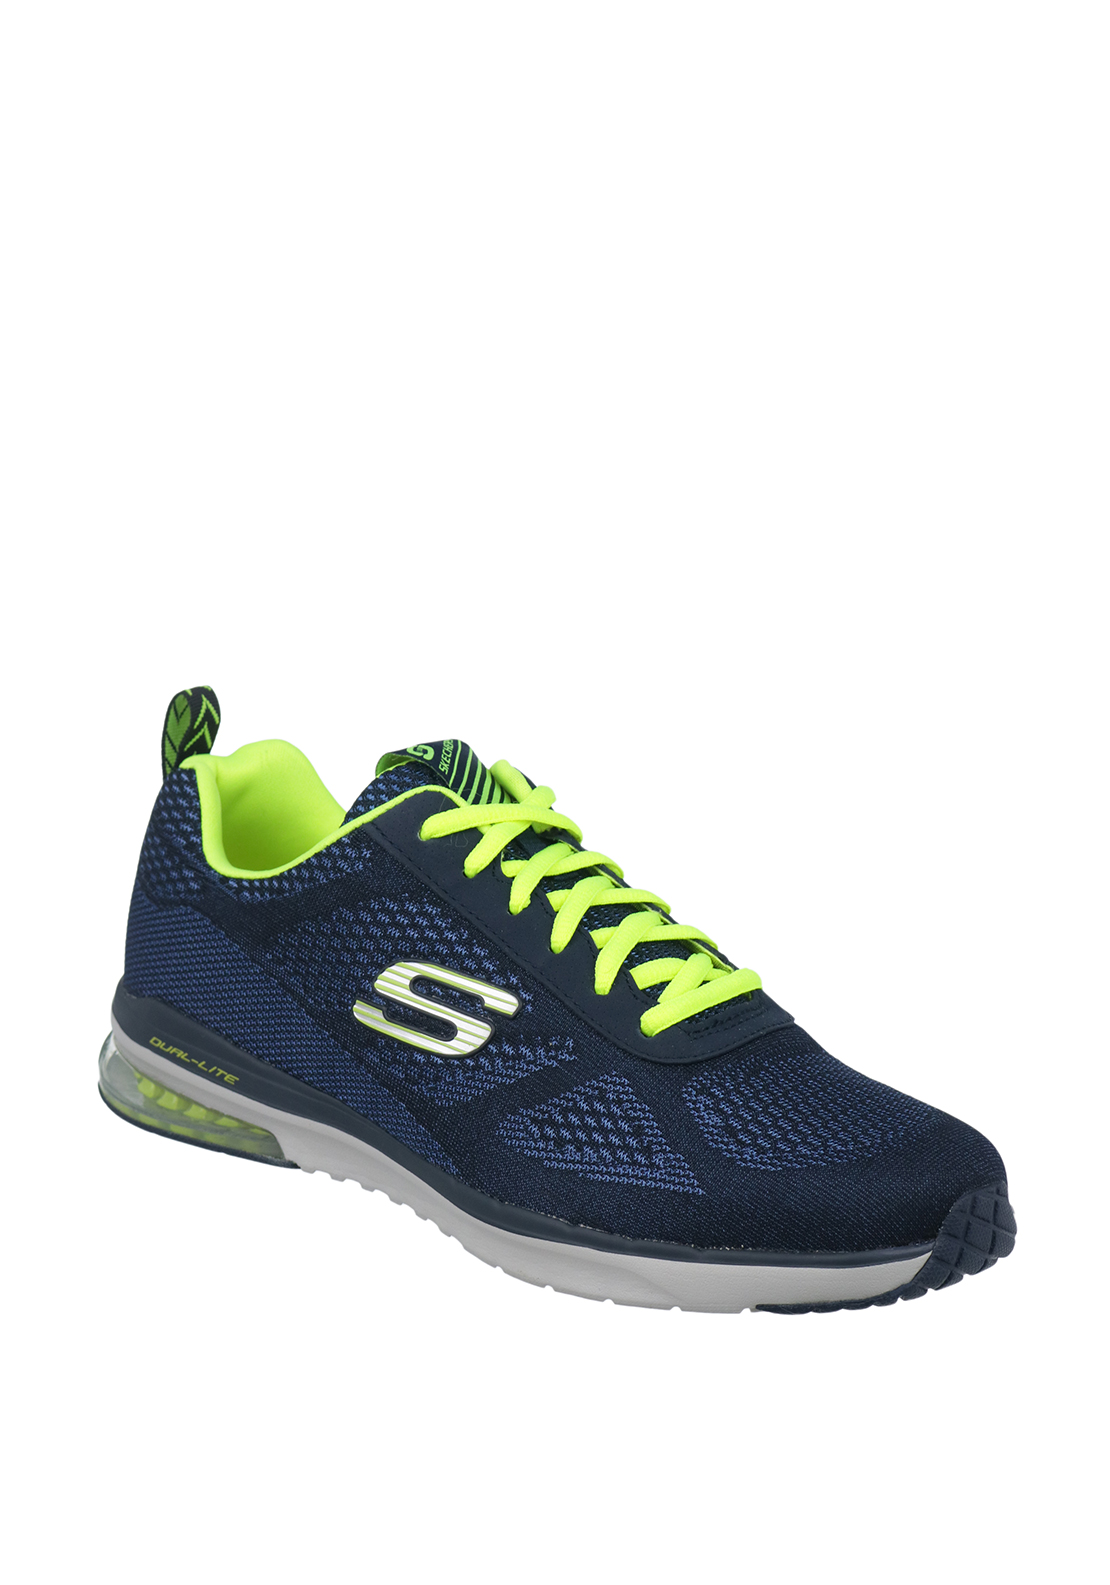 Skechers Mens Dual Lite Trainers, Navy